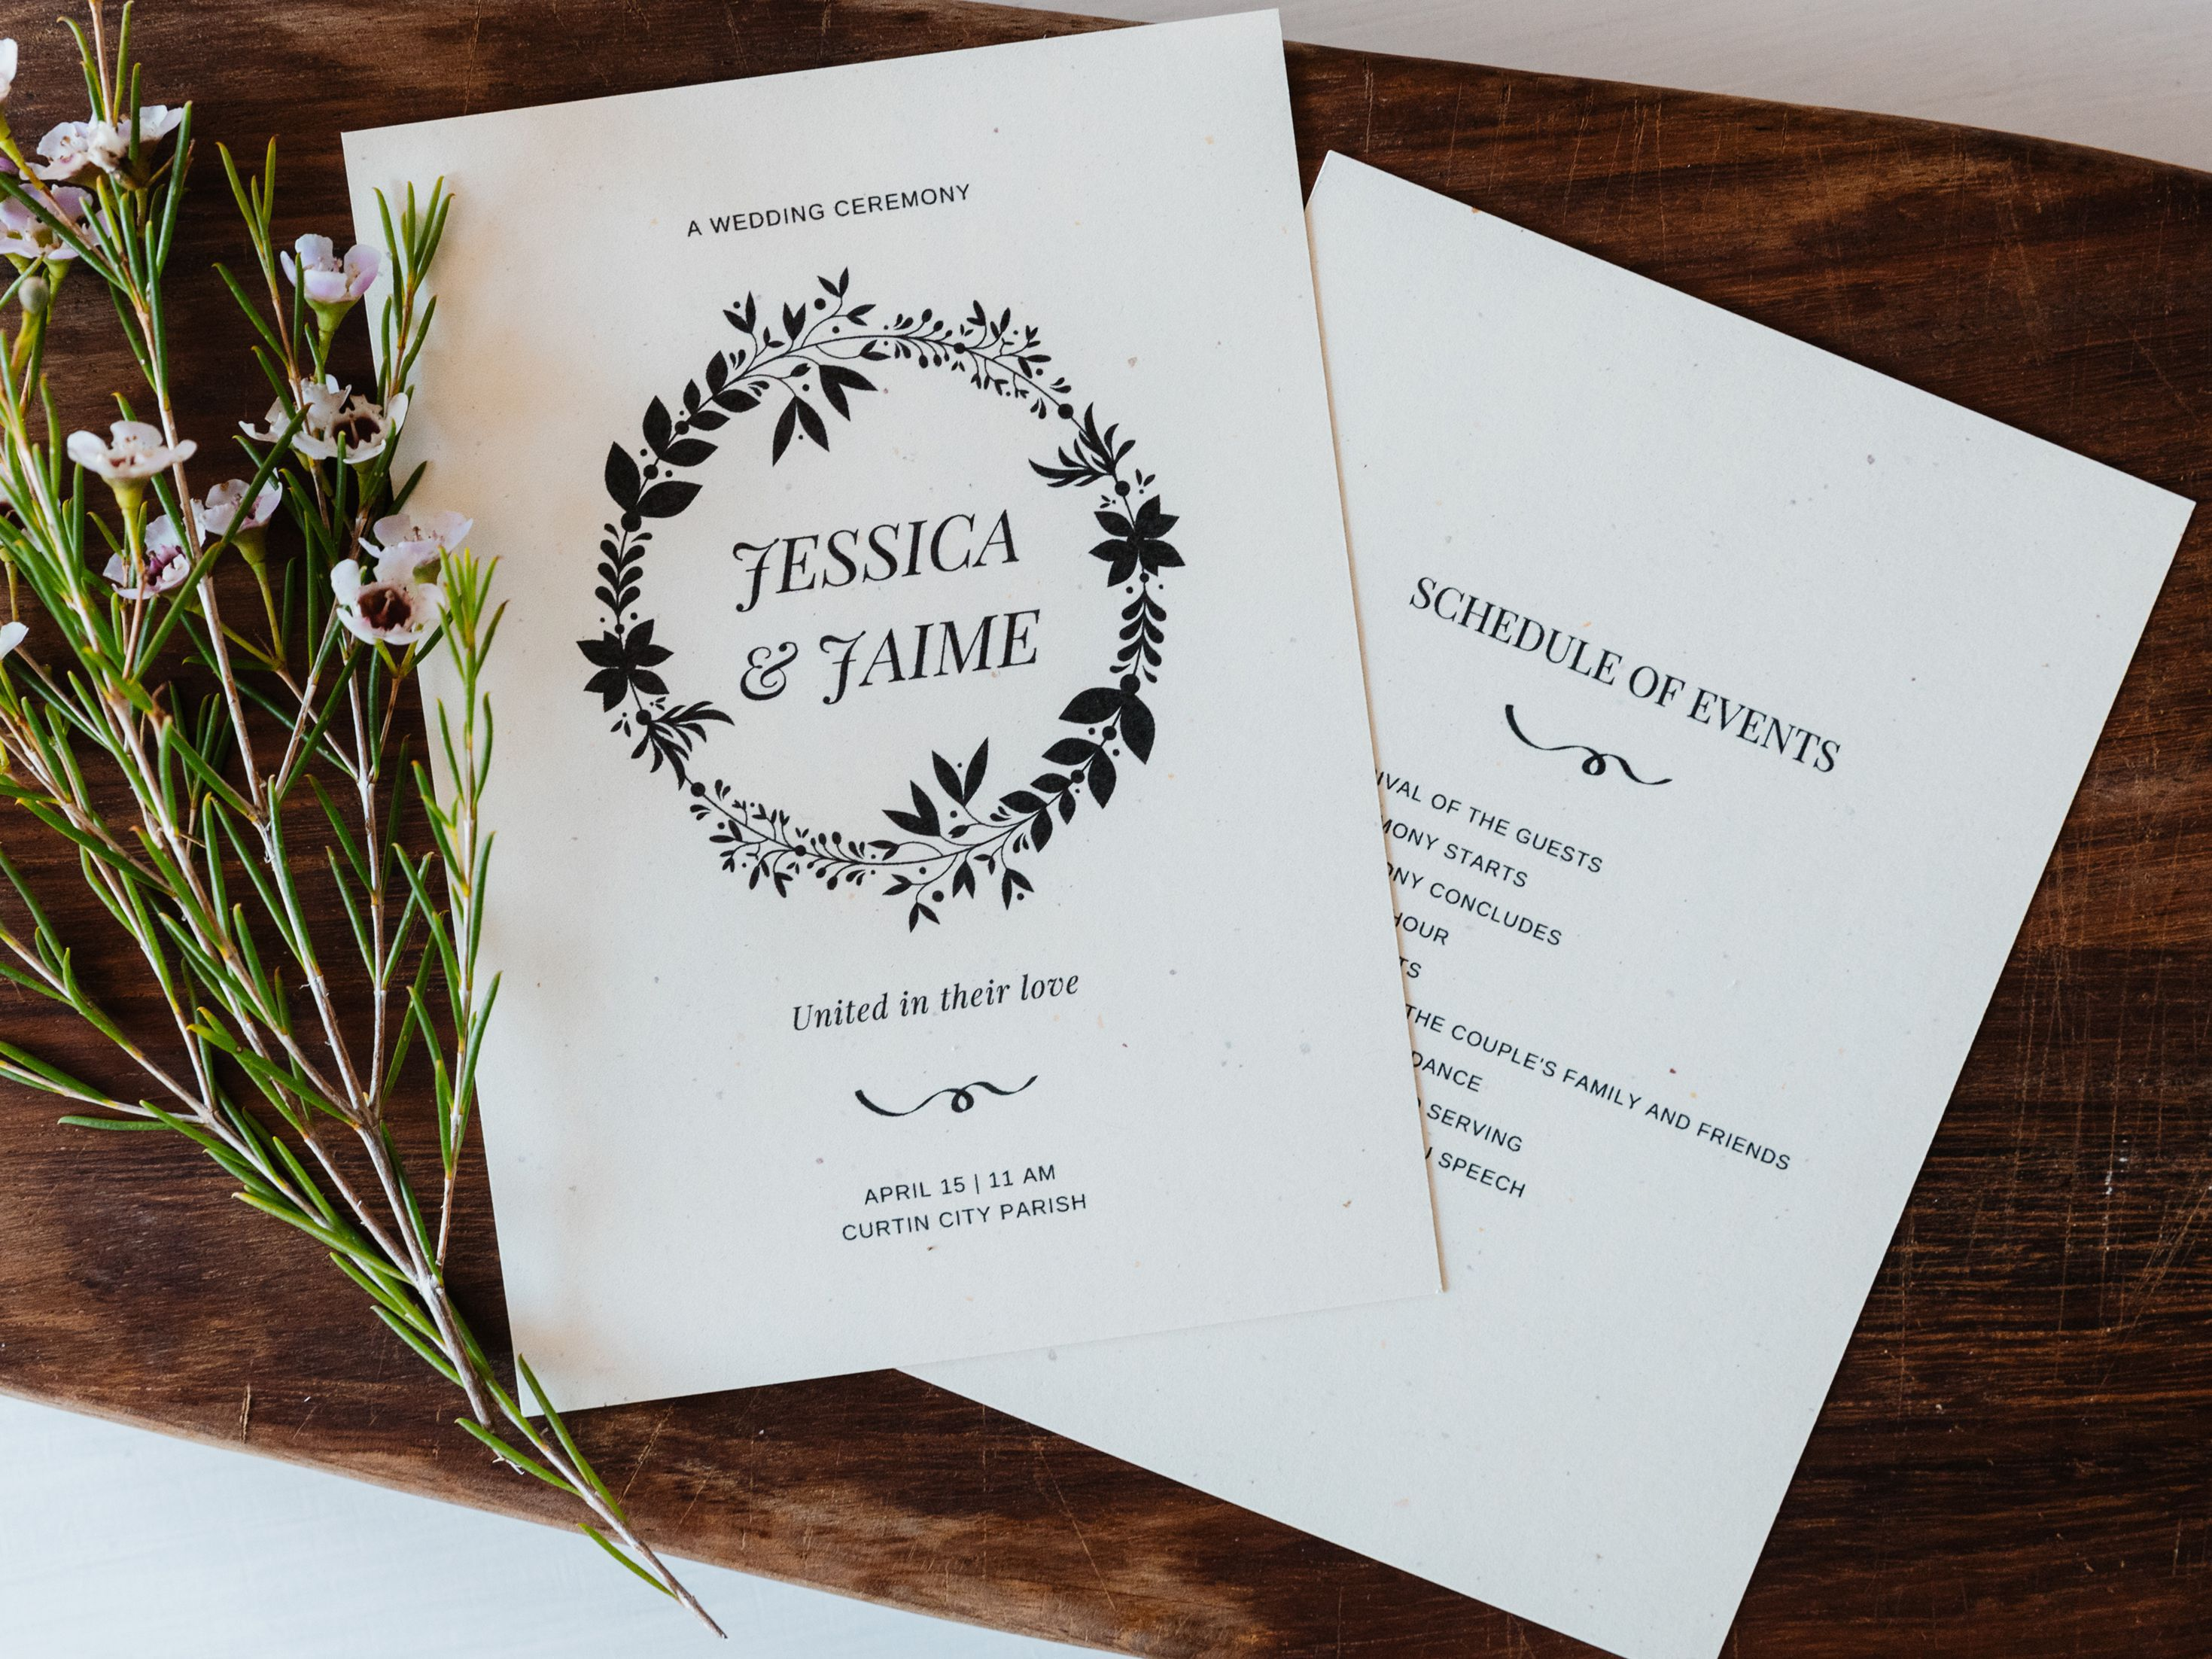 005 Imposing Free Wedding Program Template For Word Example  Download Fan Microsoft Downloadable ReceptionFull